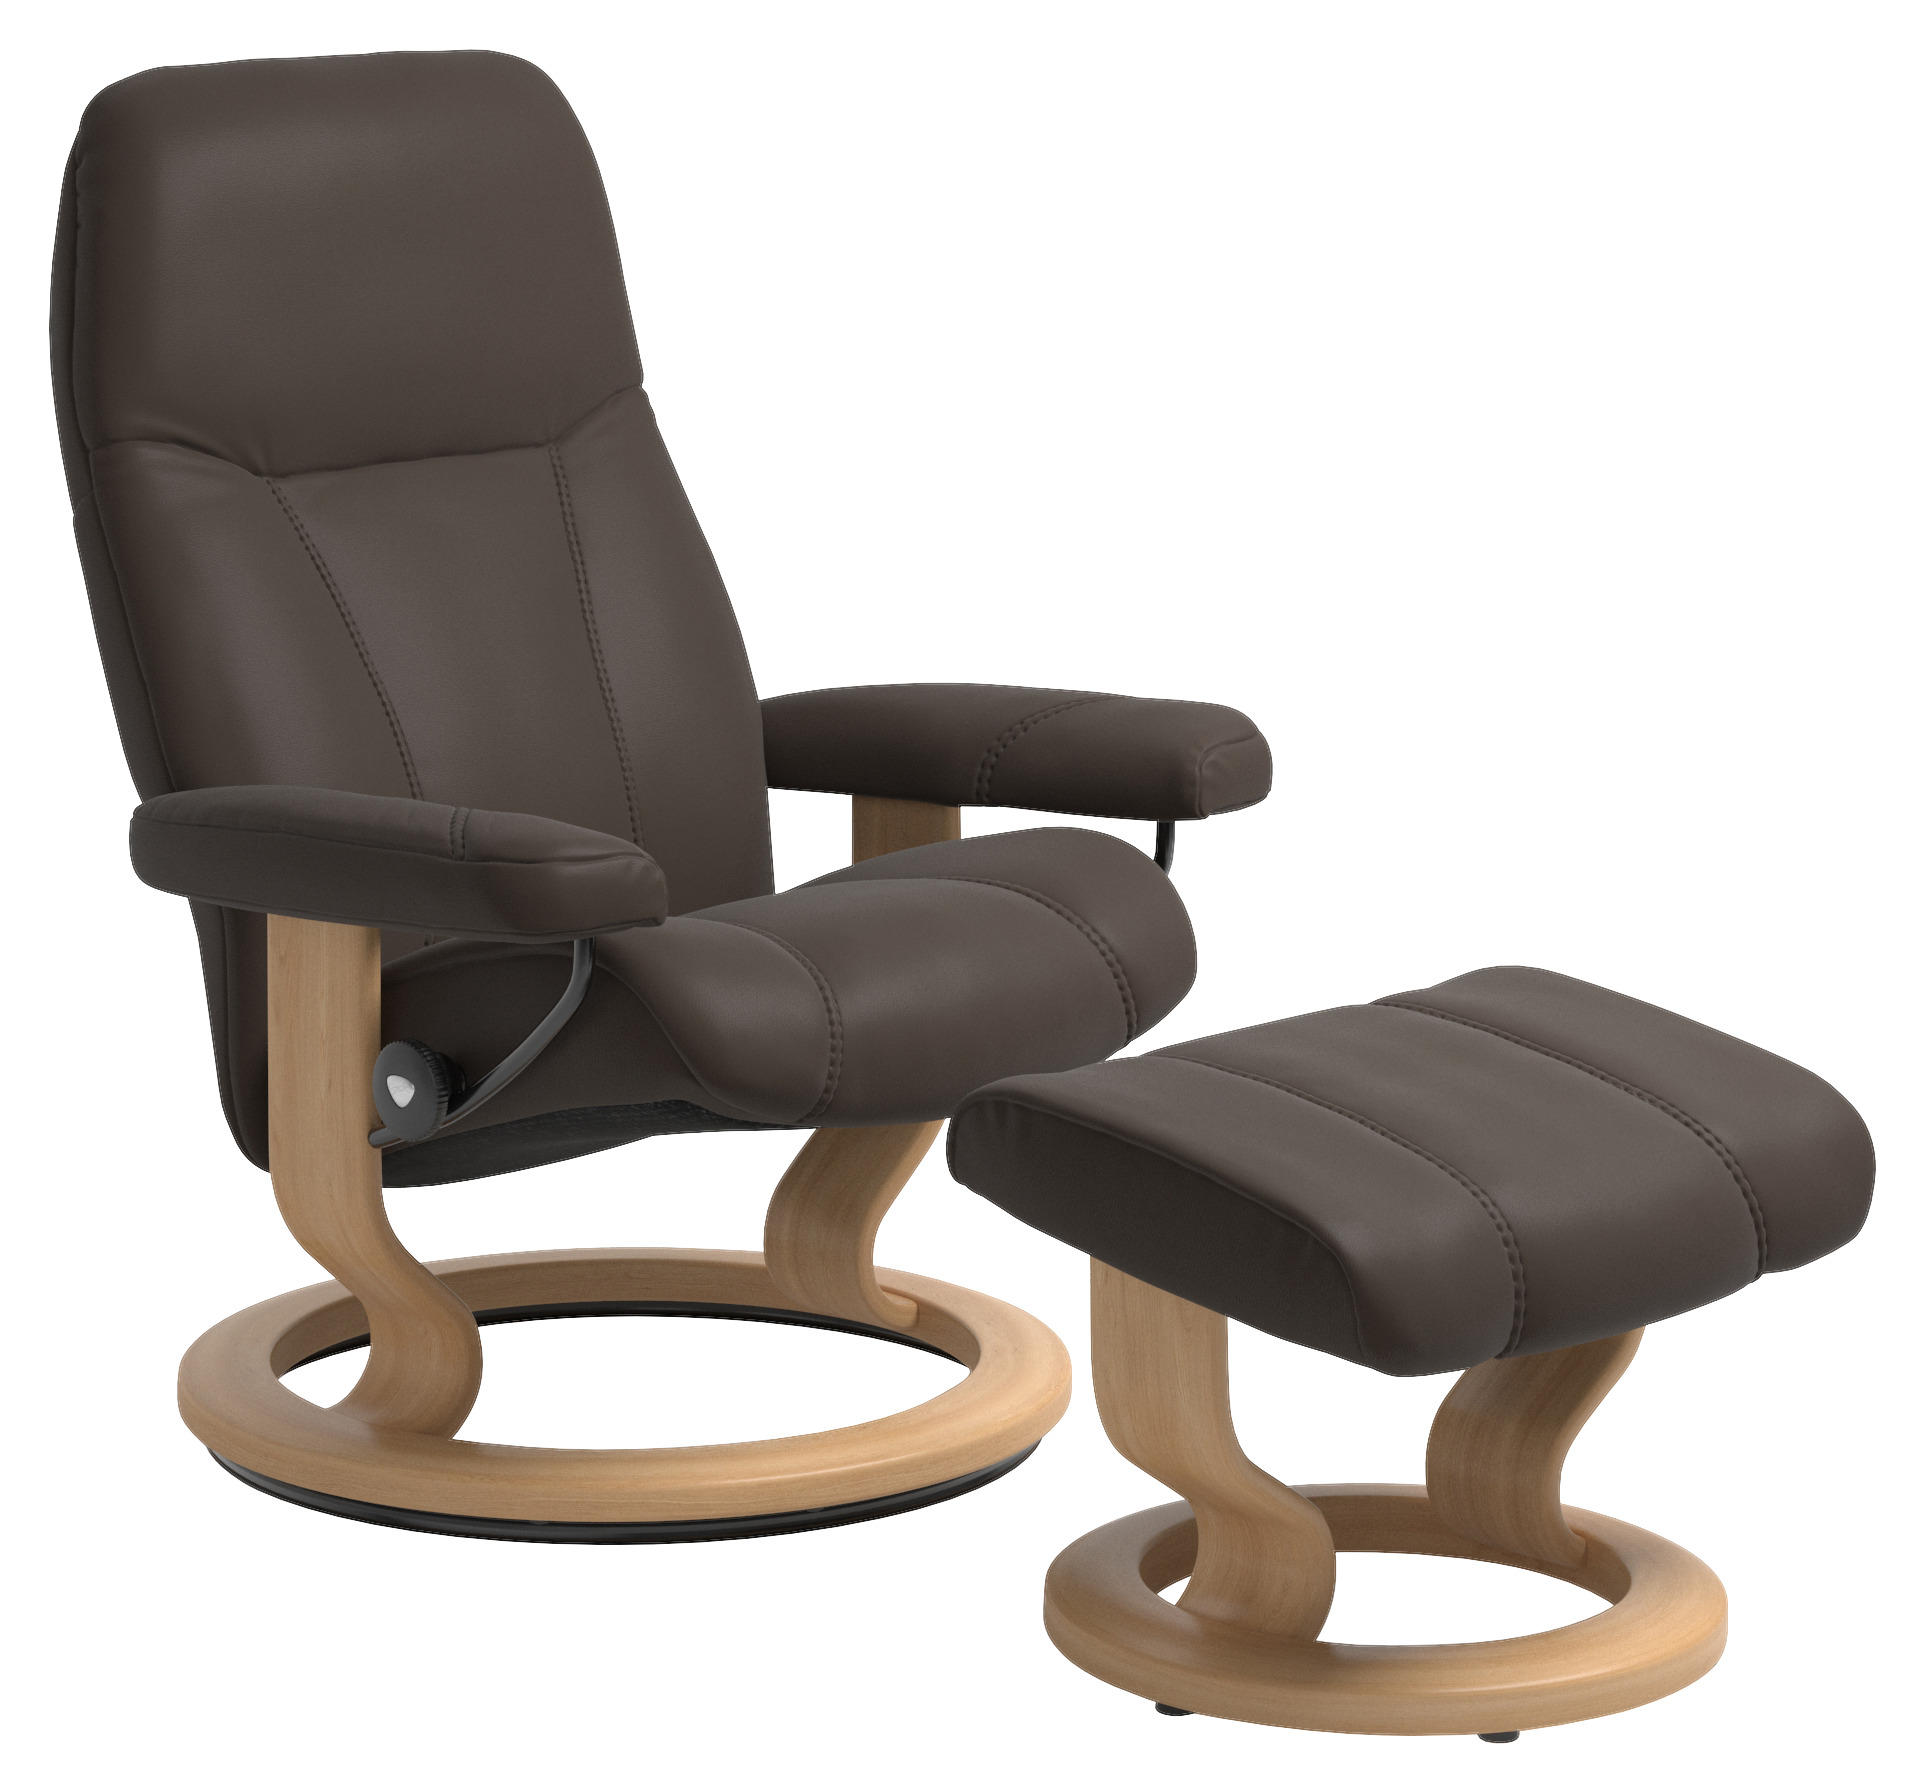 Stressless Sessel Hocker Set Online Bestellen